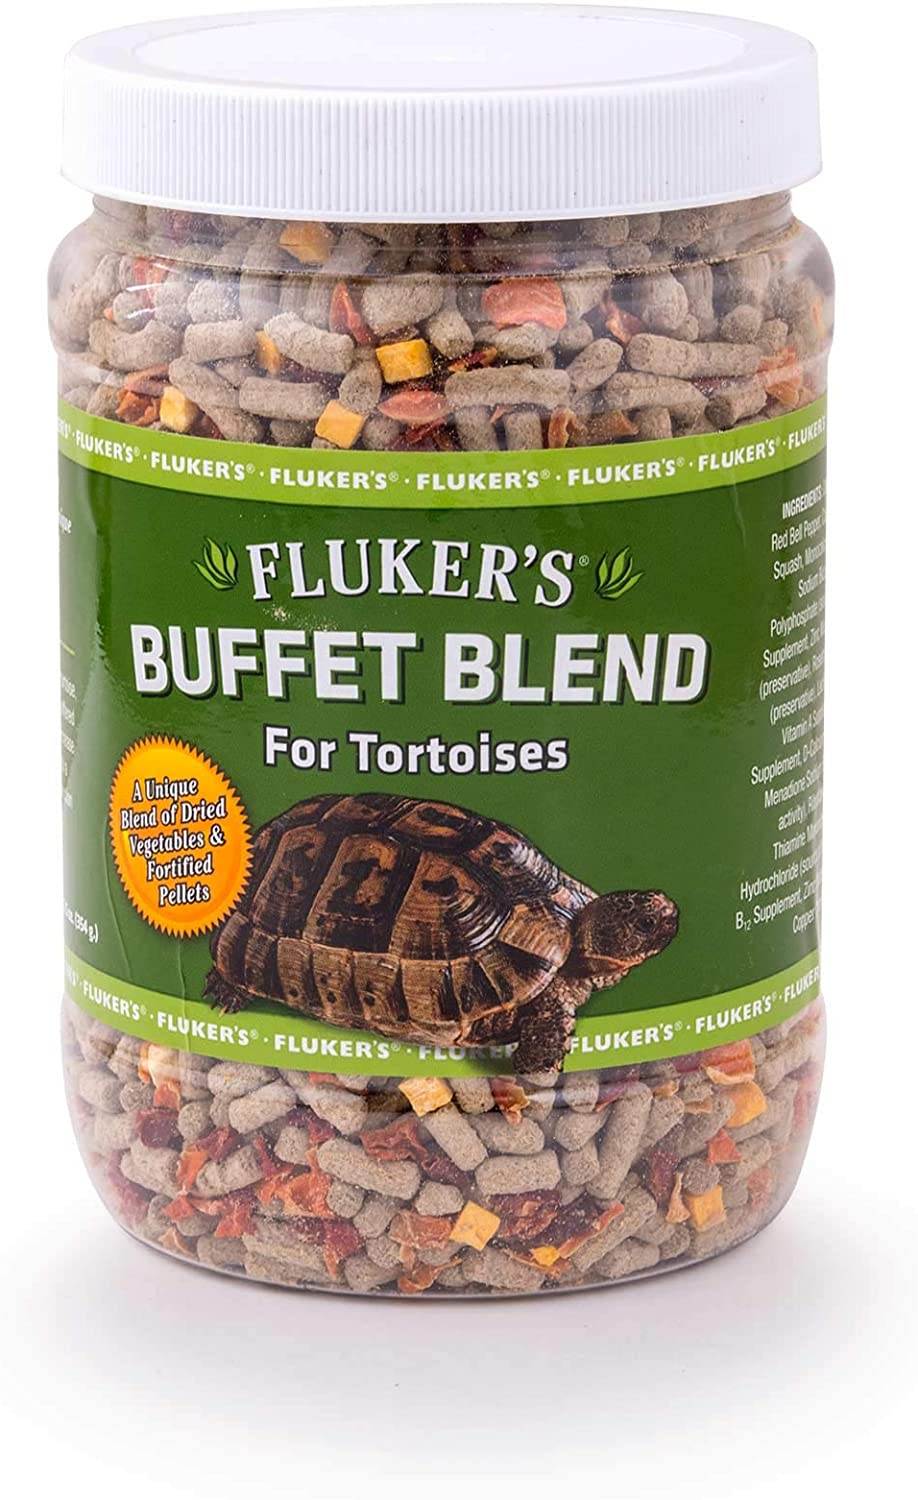 Flukers 70024 Buffet Blend Tortoise Food, 12.5Oz